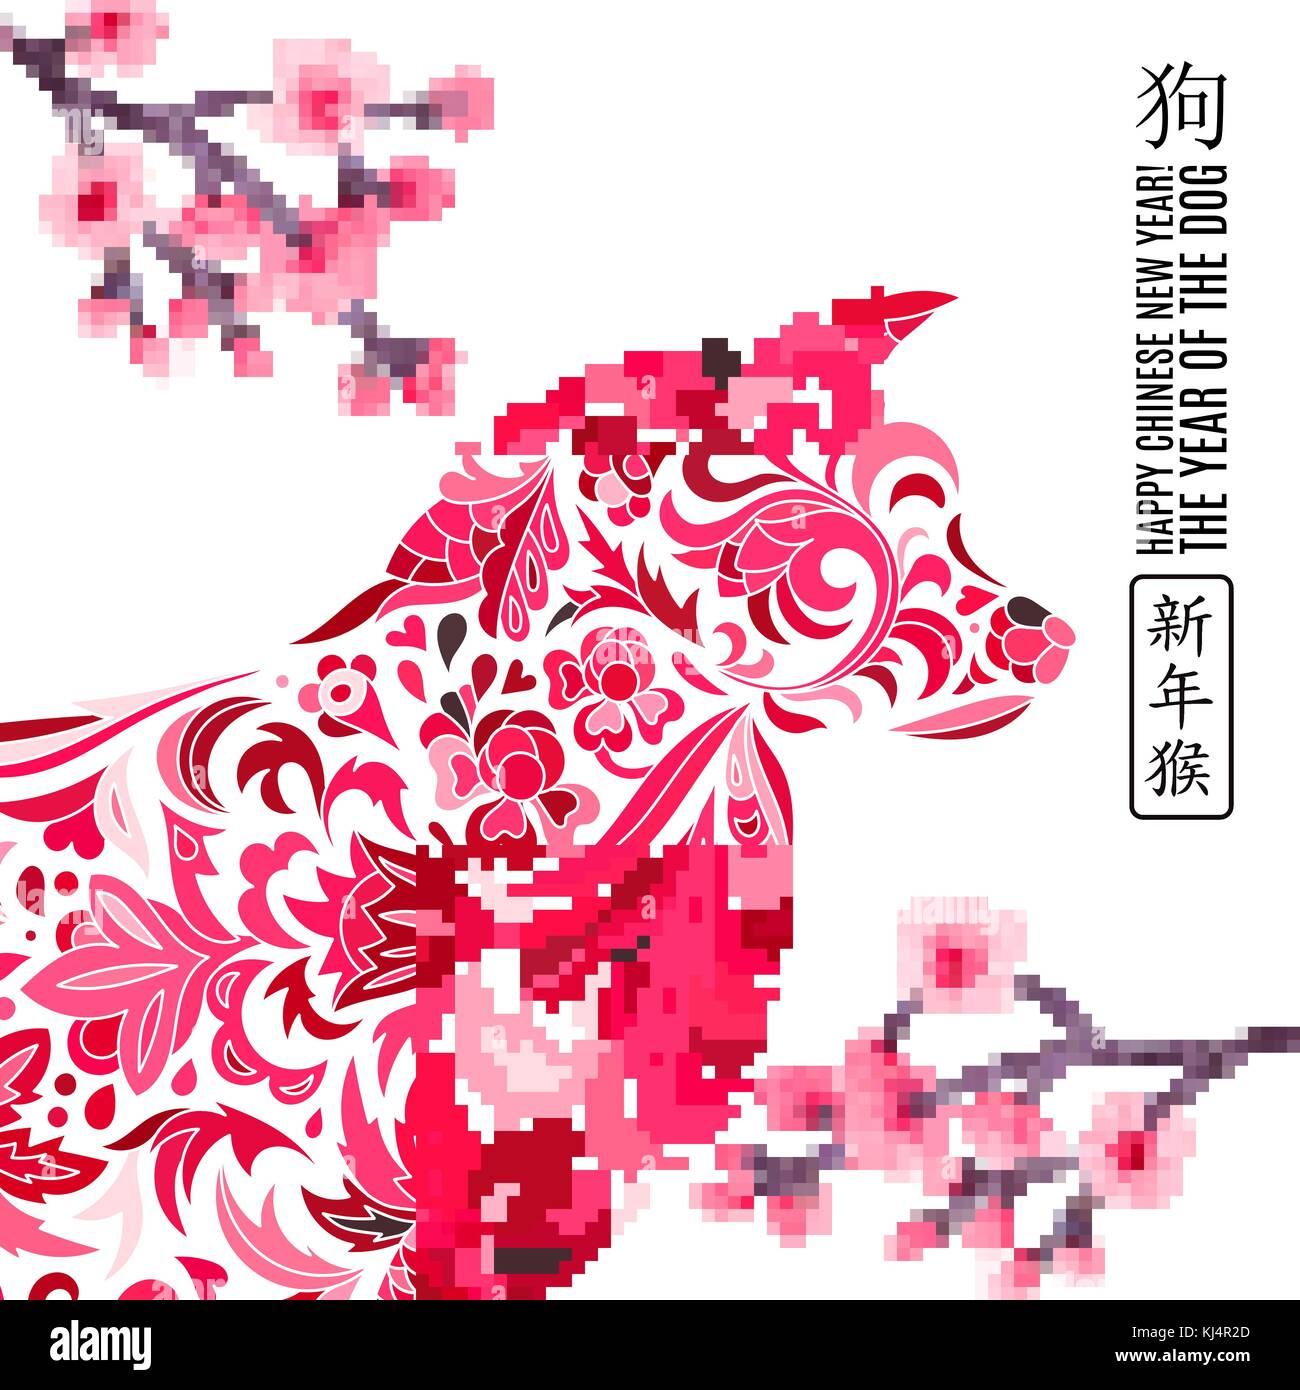 2018 happy new year greeting card year of the dog chinese new year with hand drawn doodles vector illustration chinese translation happy new year dog